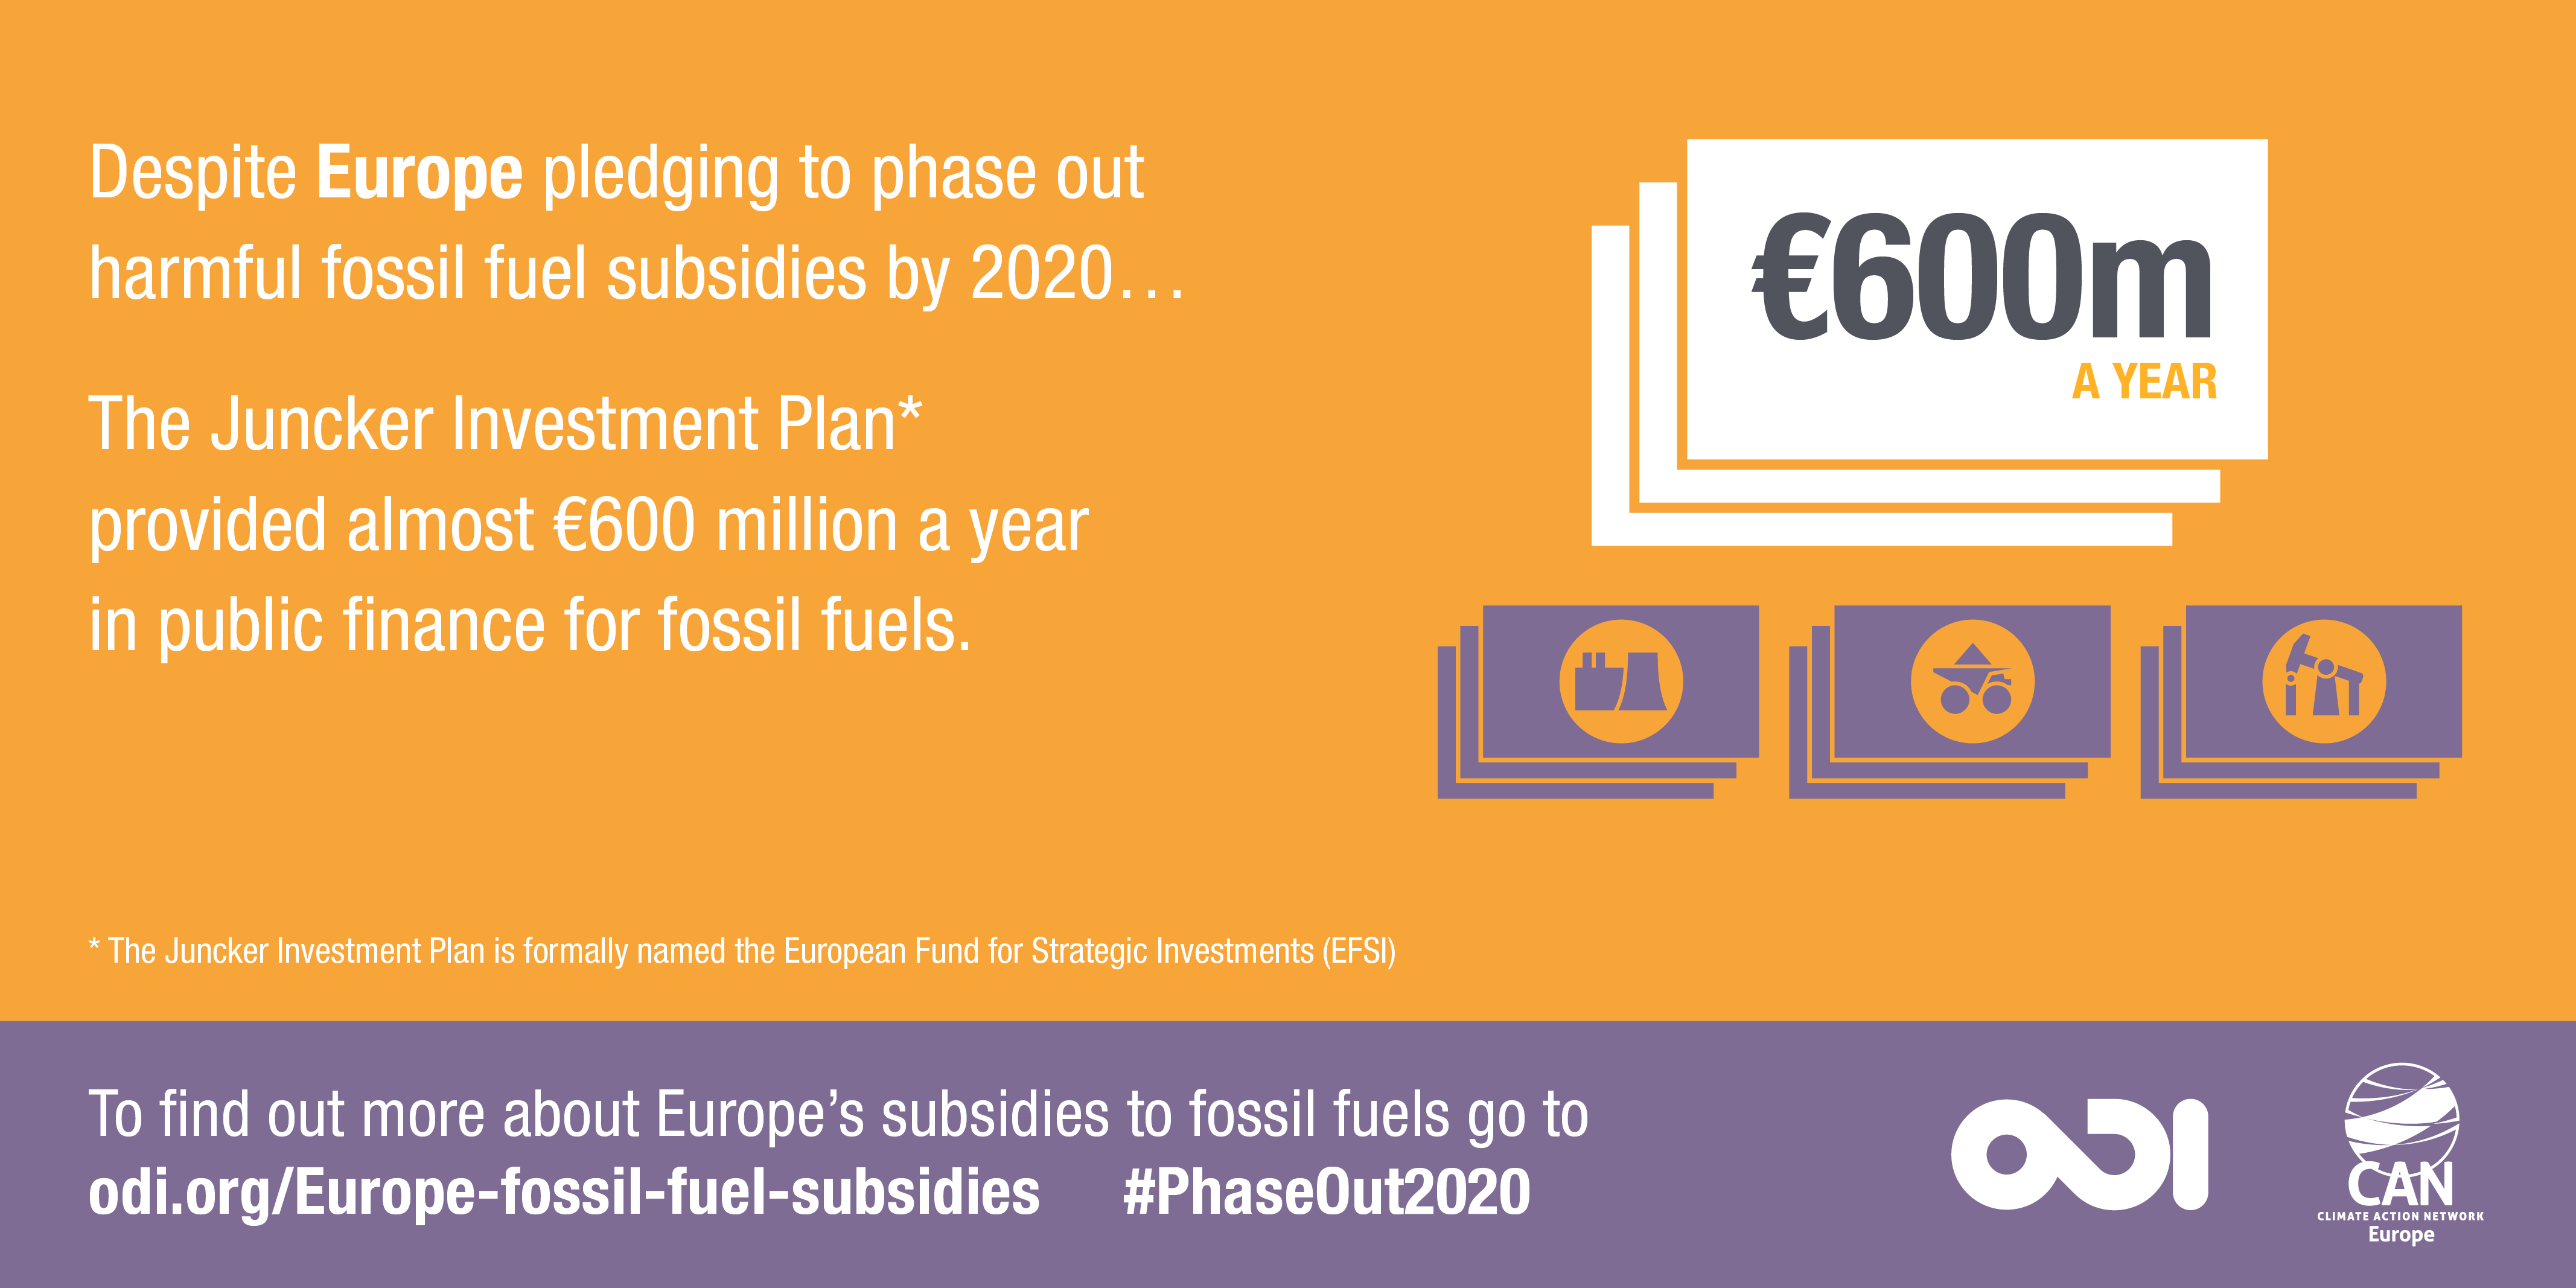 The Juncker Investment Plan provided over €600 million a year in public finance for fossil fuels. Image: Overseas Development Institute